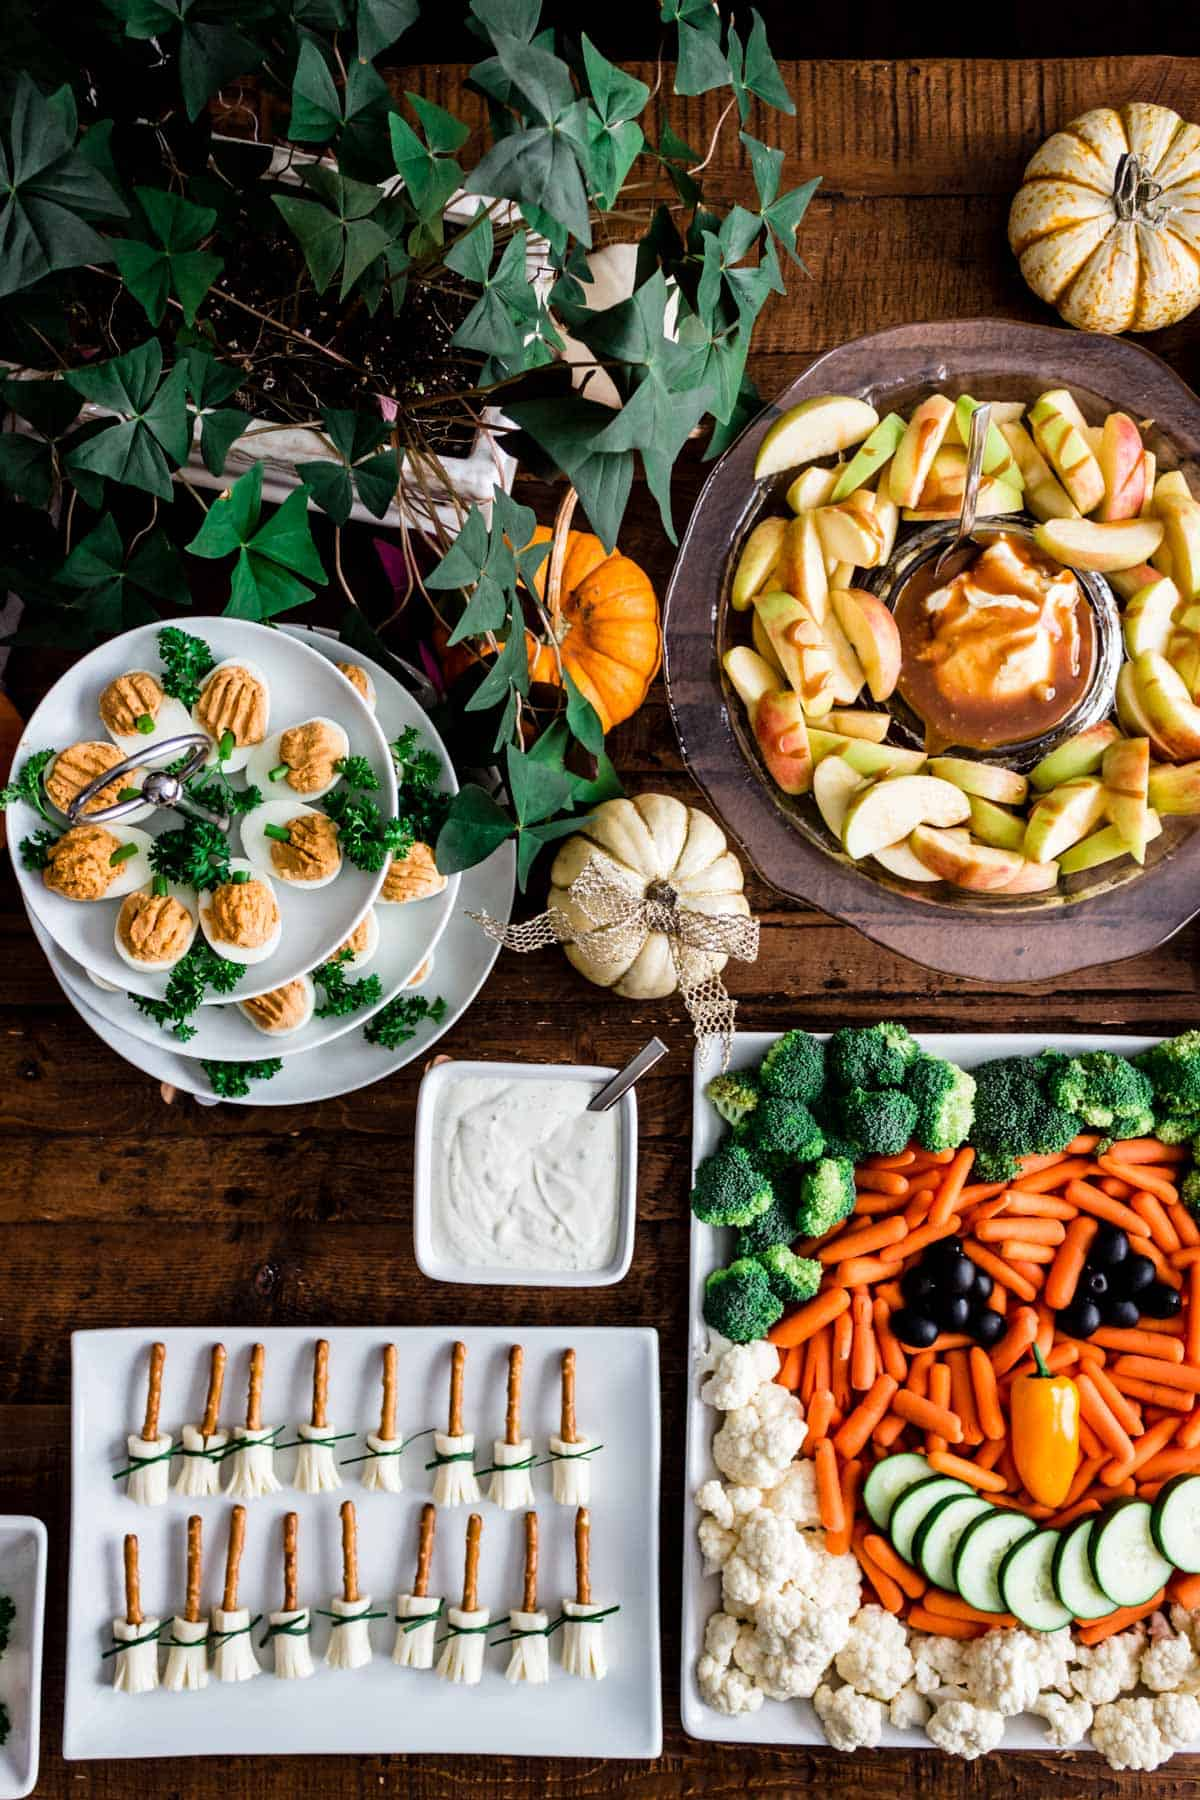 Fall themed appetizers and party foods arranged on a rustic wooden farmhouse style table.